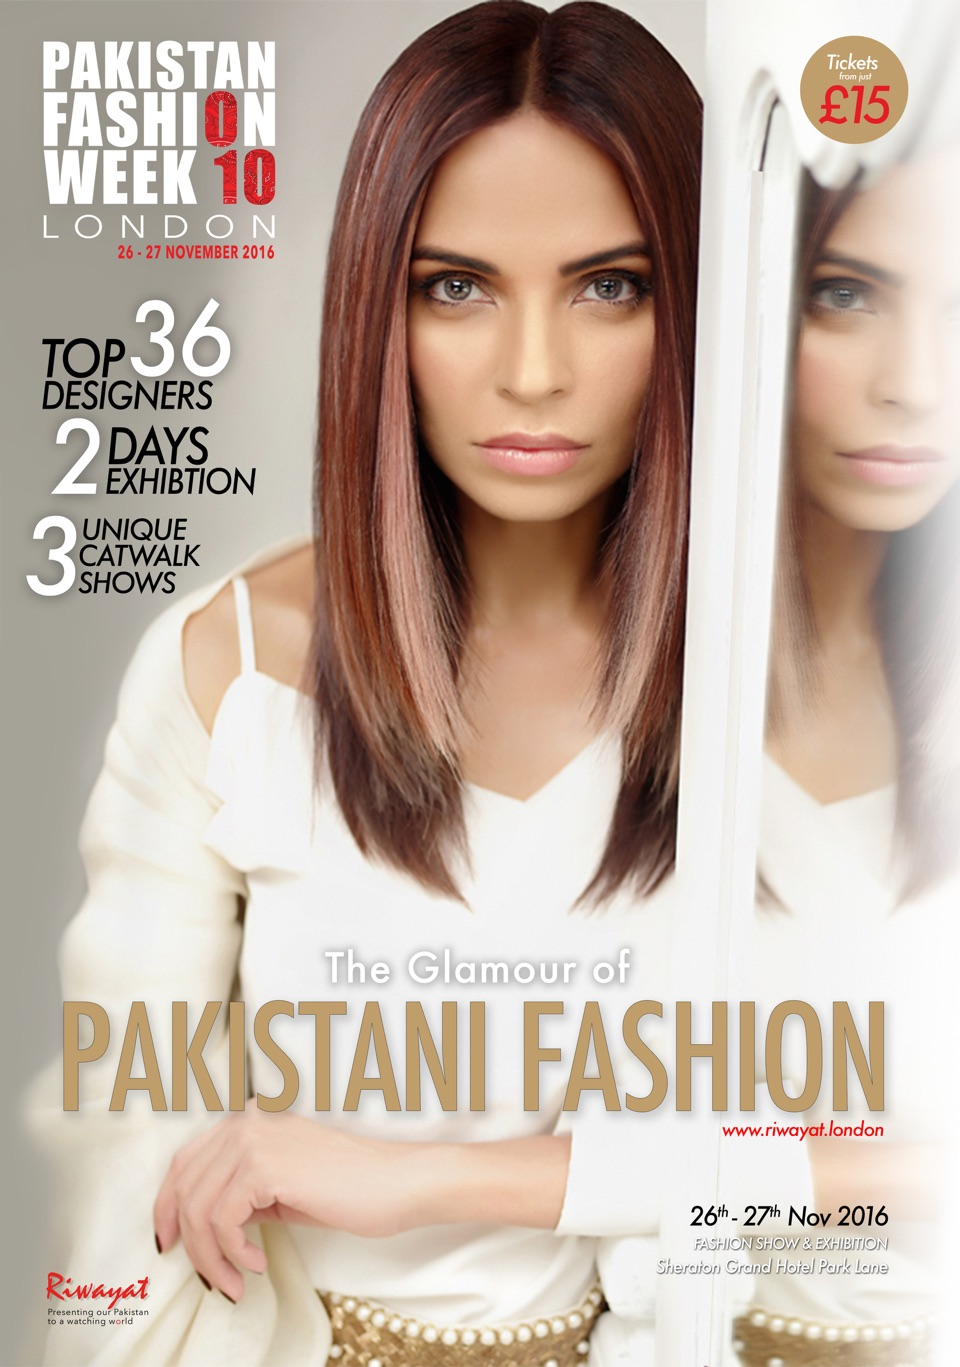 Pakistan Fashion Week London